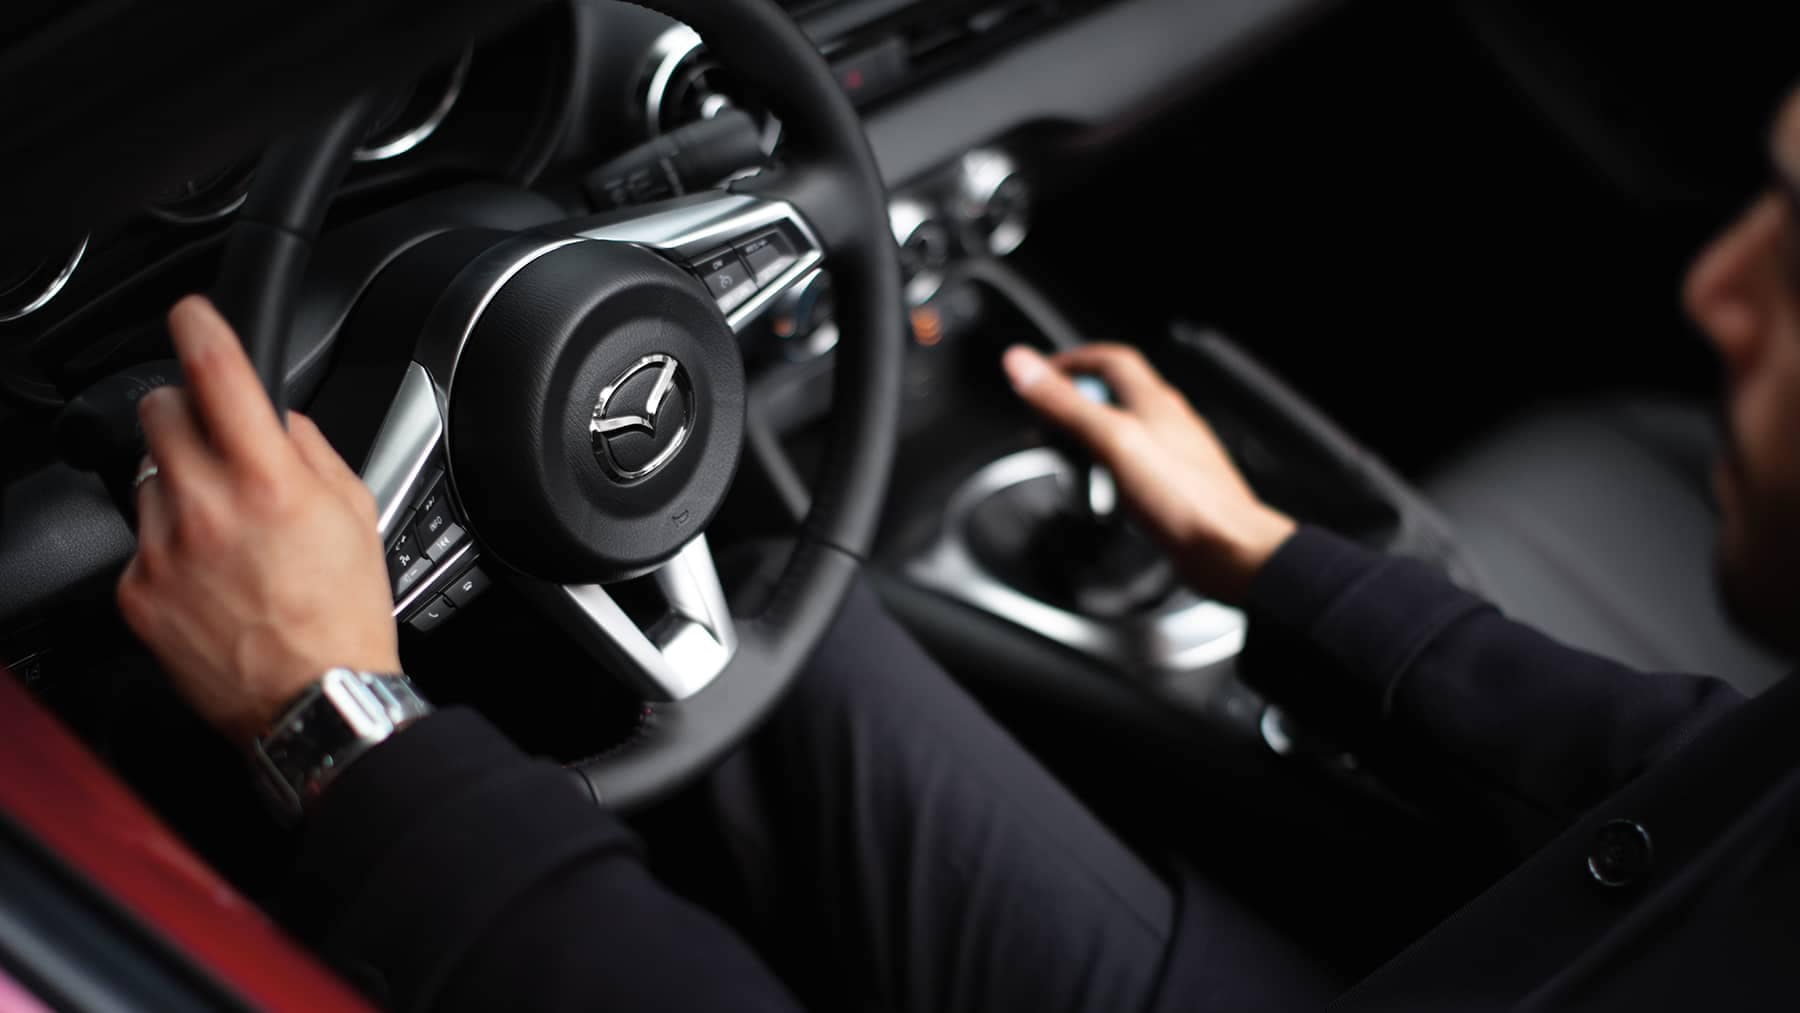 2019 Mazda MX-5 Miata gear shifter